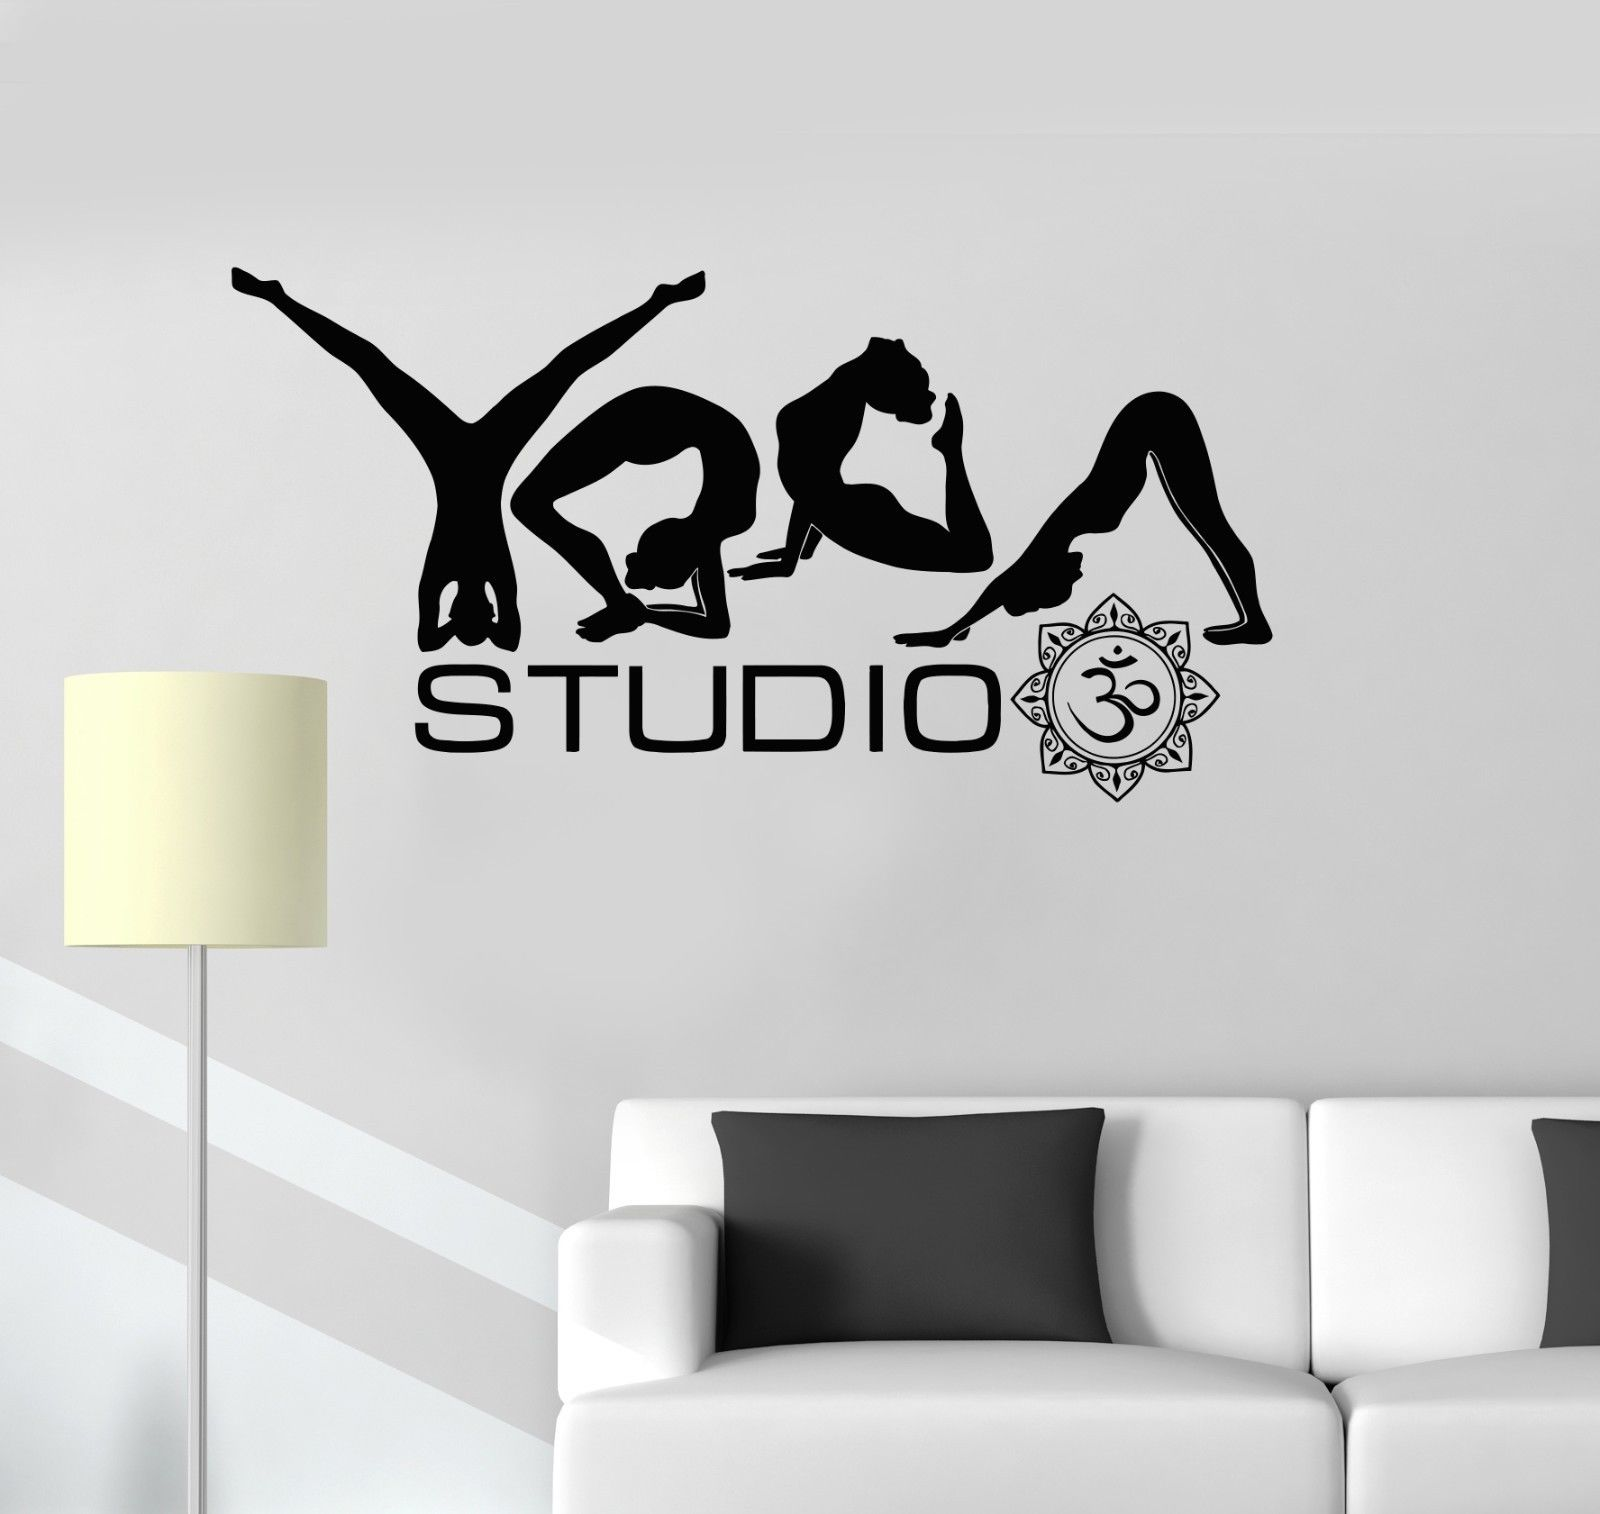 Poses, Buddhism, Decal, Yoga, Stickers, Shipping